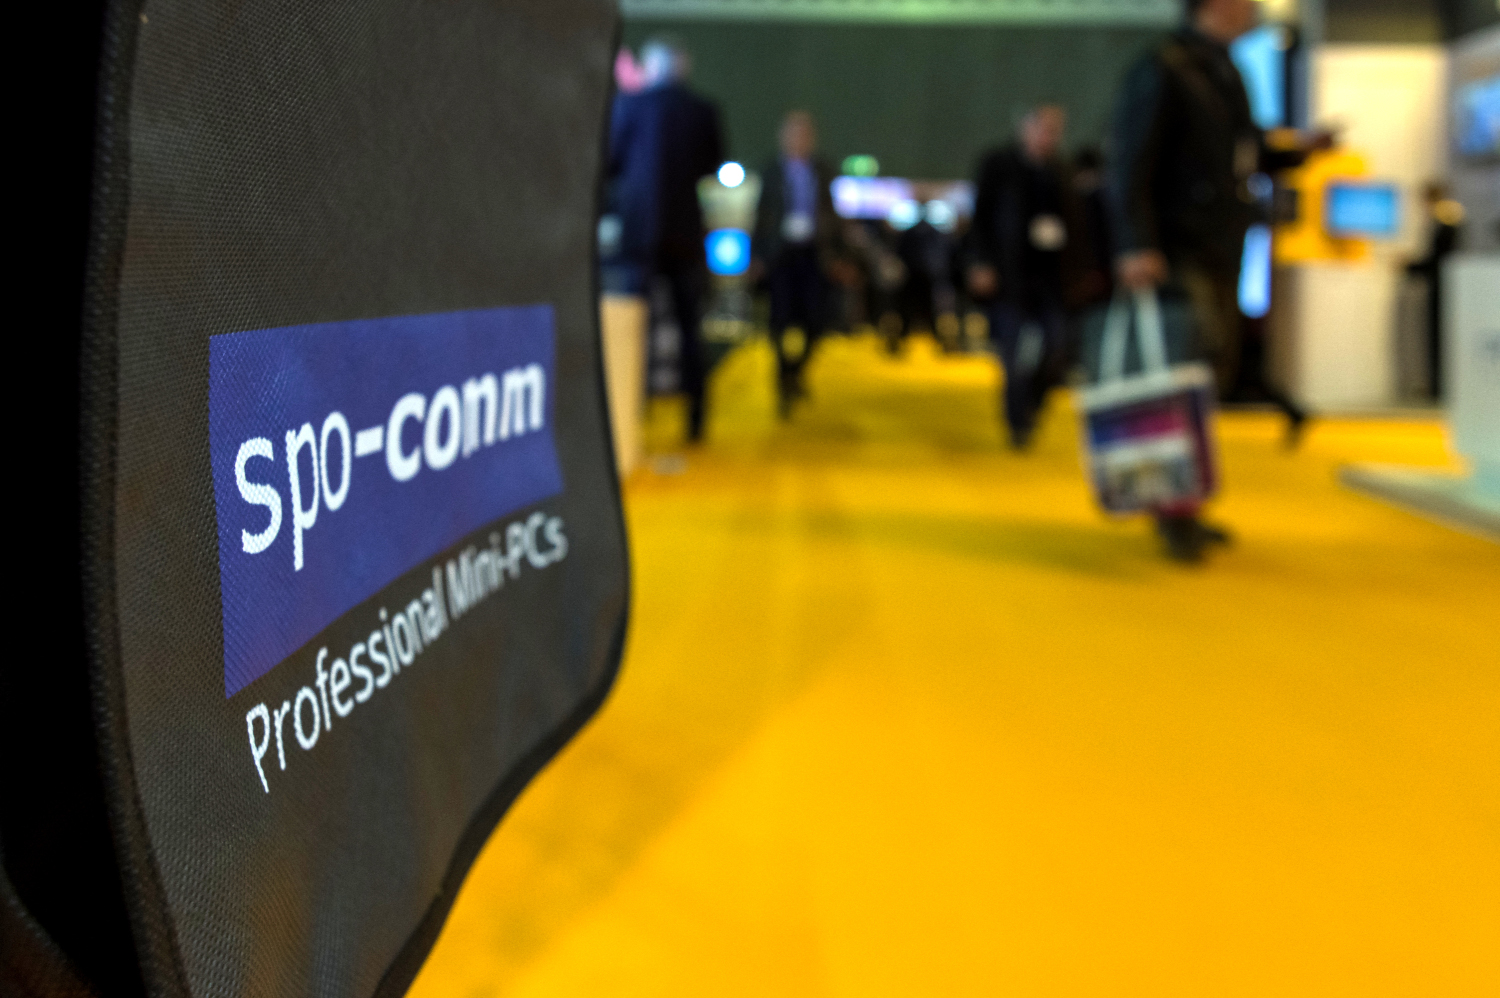 spo-comm at the ISE 2019: We say Thank you!